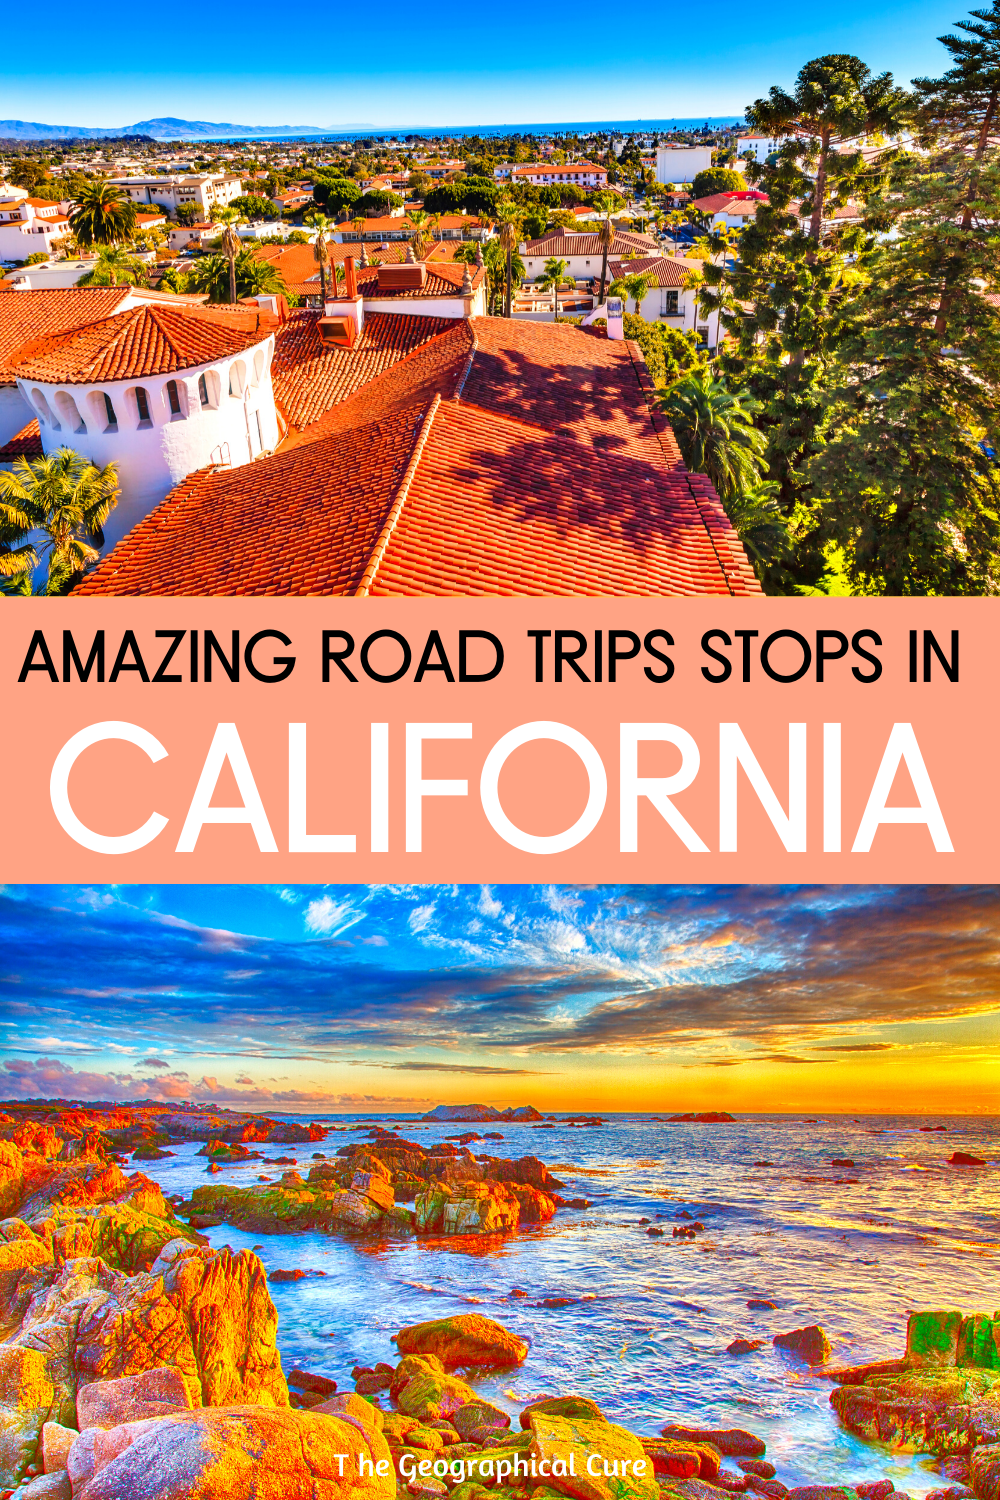 Amazing Road Trip Destinations in Southern California